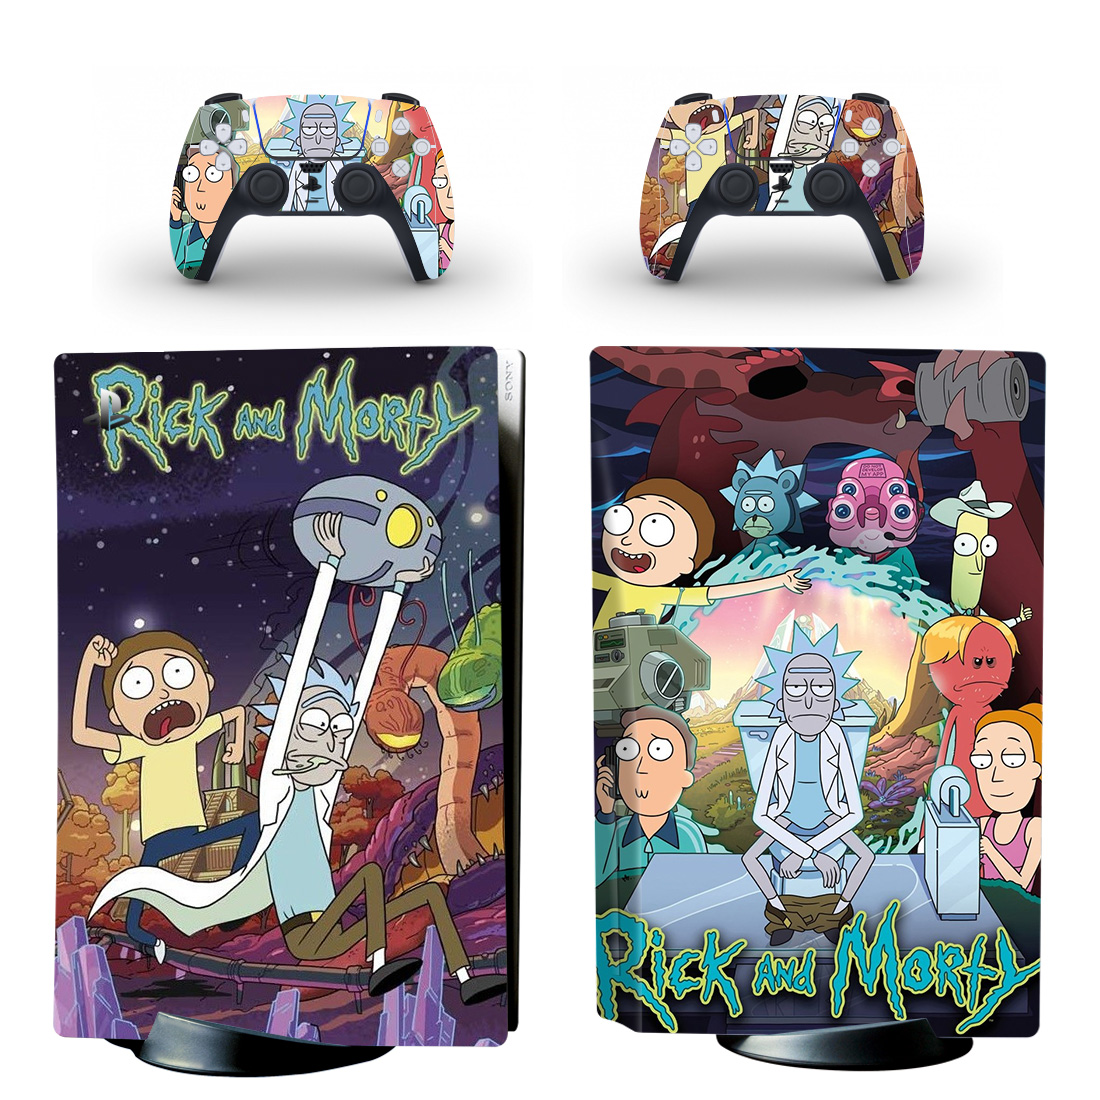 Rick And Morty PS5 Skin Sticker For PlayStation 5 And Controllers Design 8